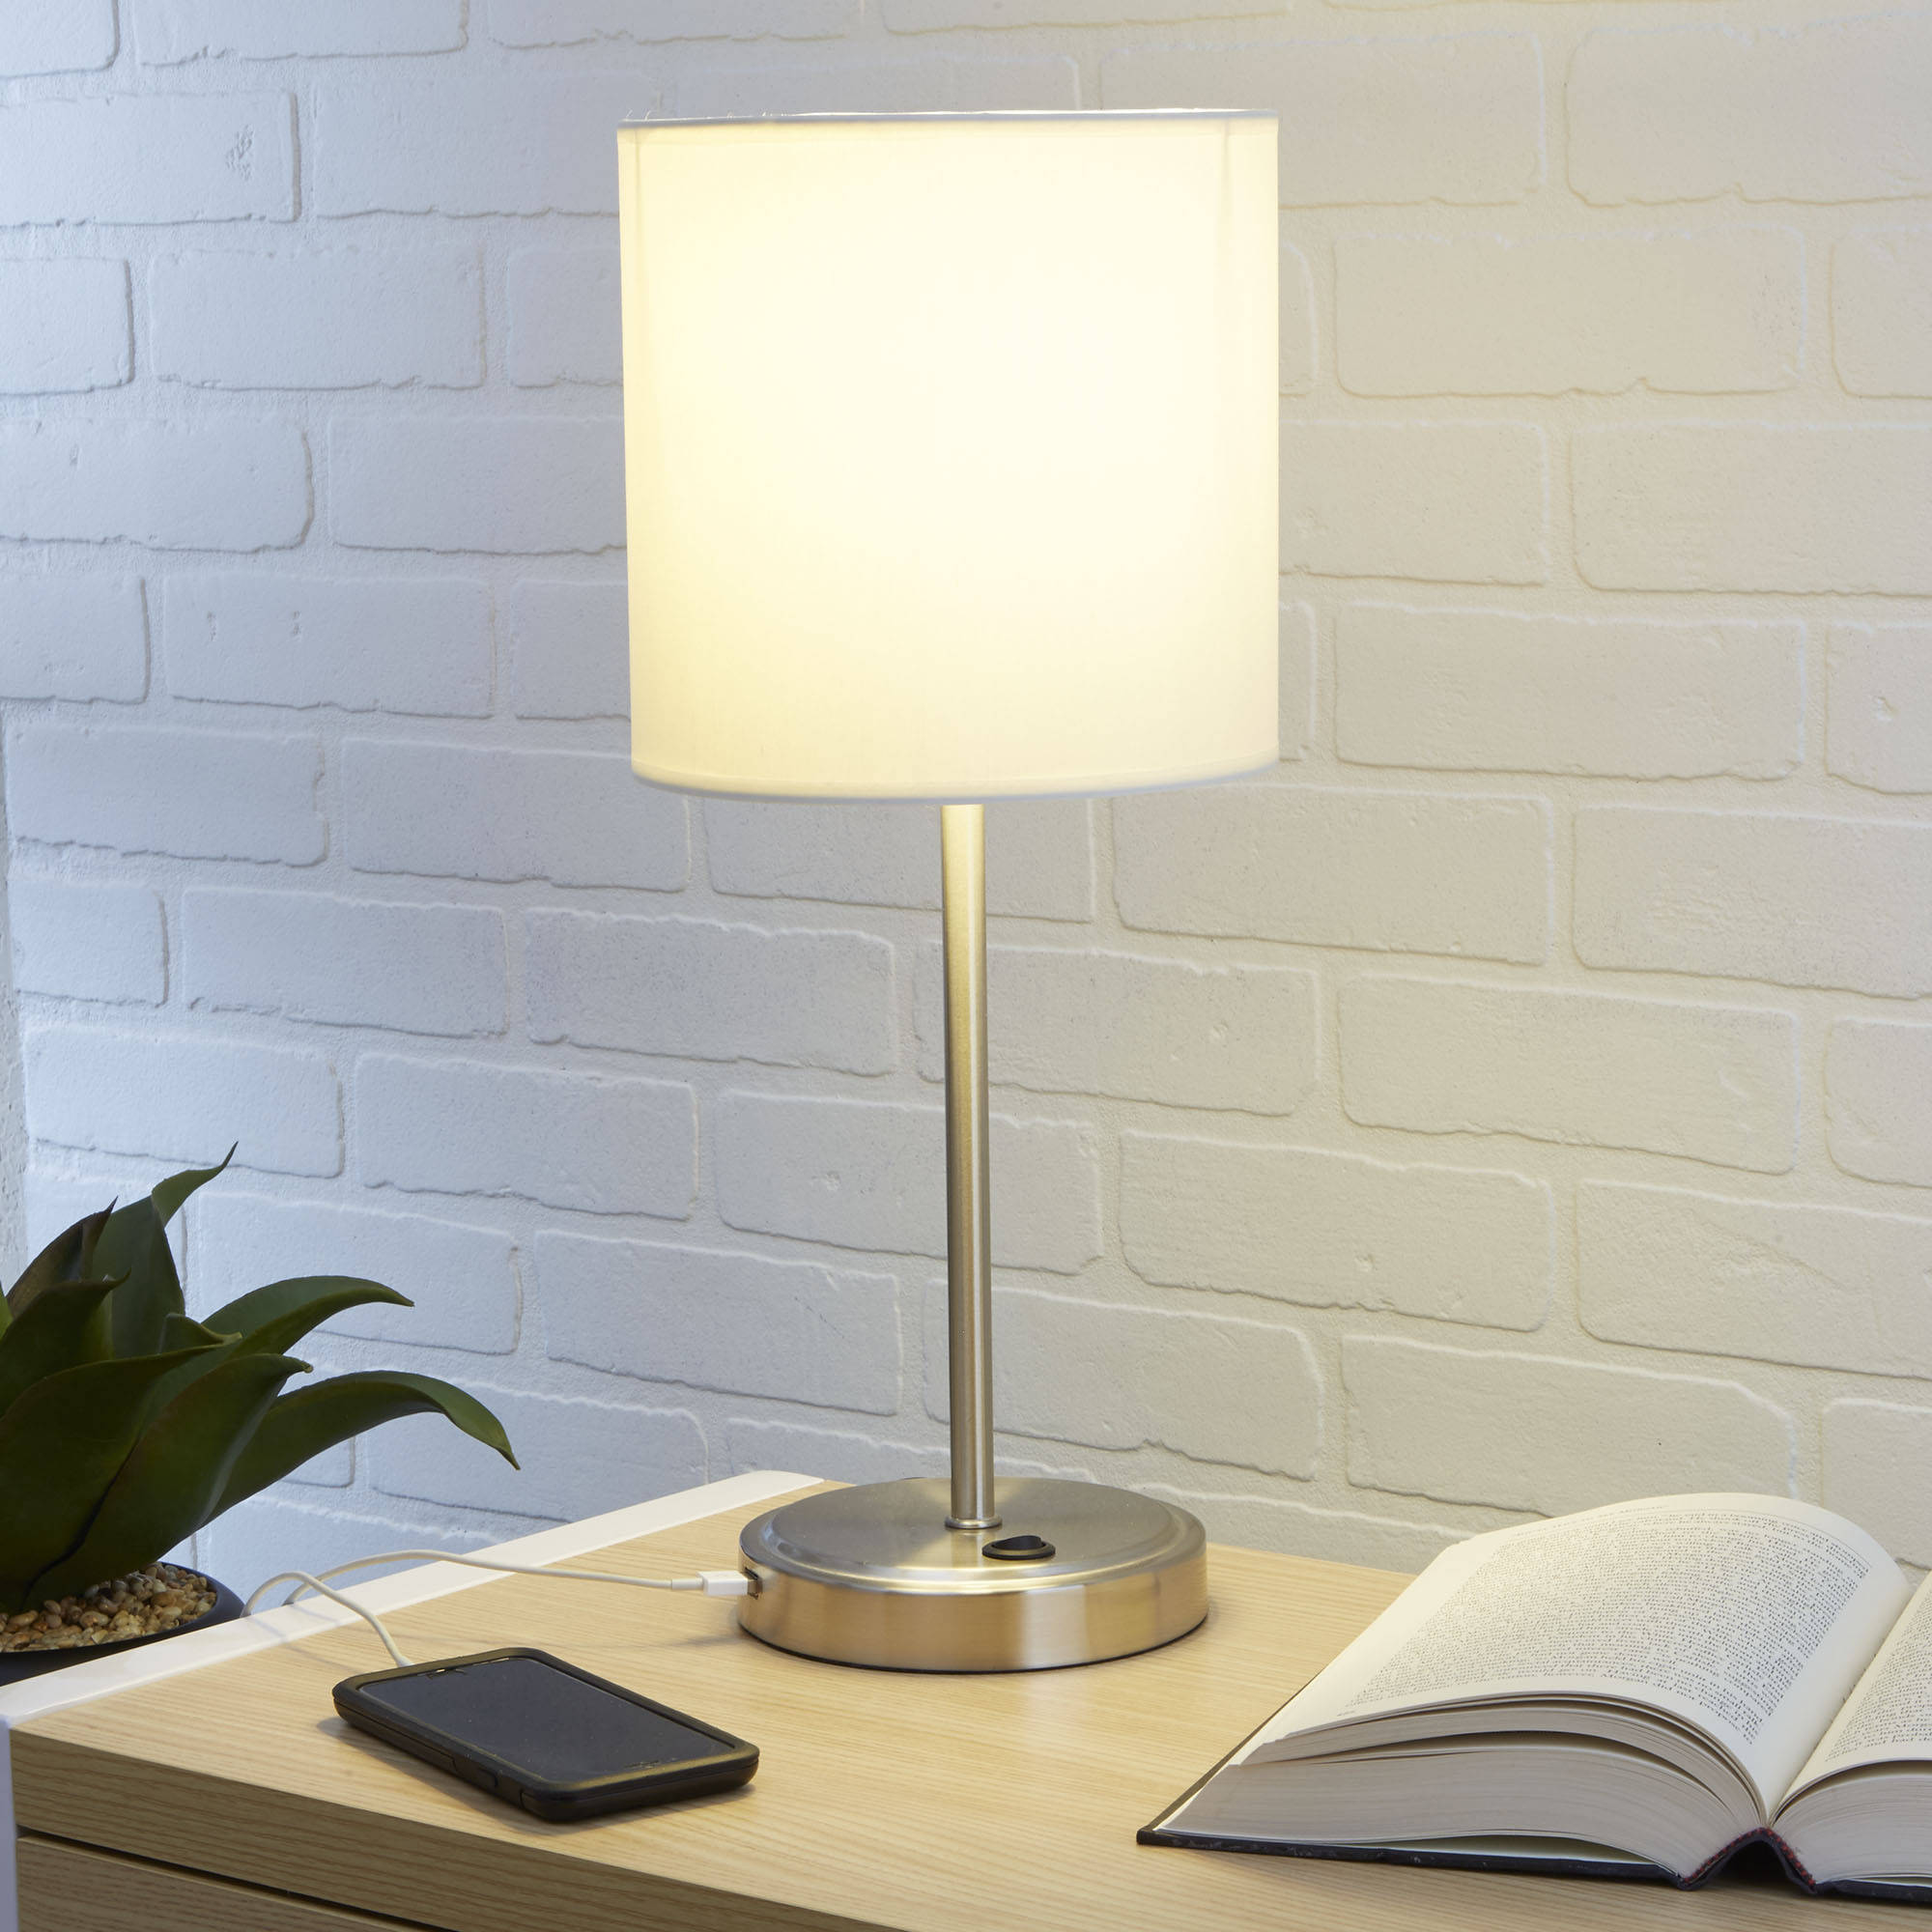 lamps photo lamp tag tags outlet size desk of full parts light port work design with charger stirring flexible usb